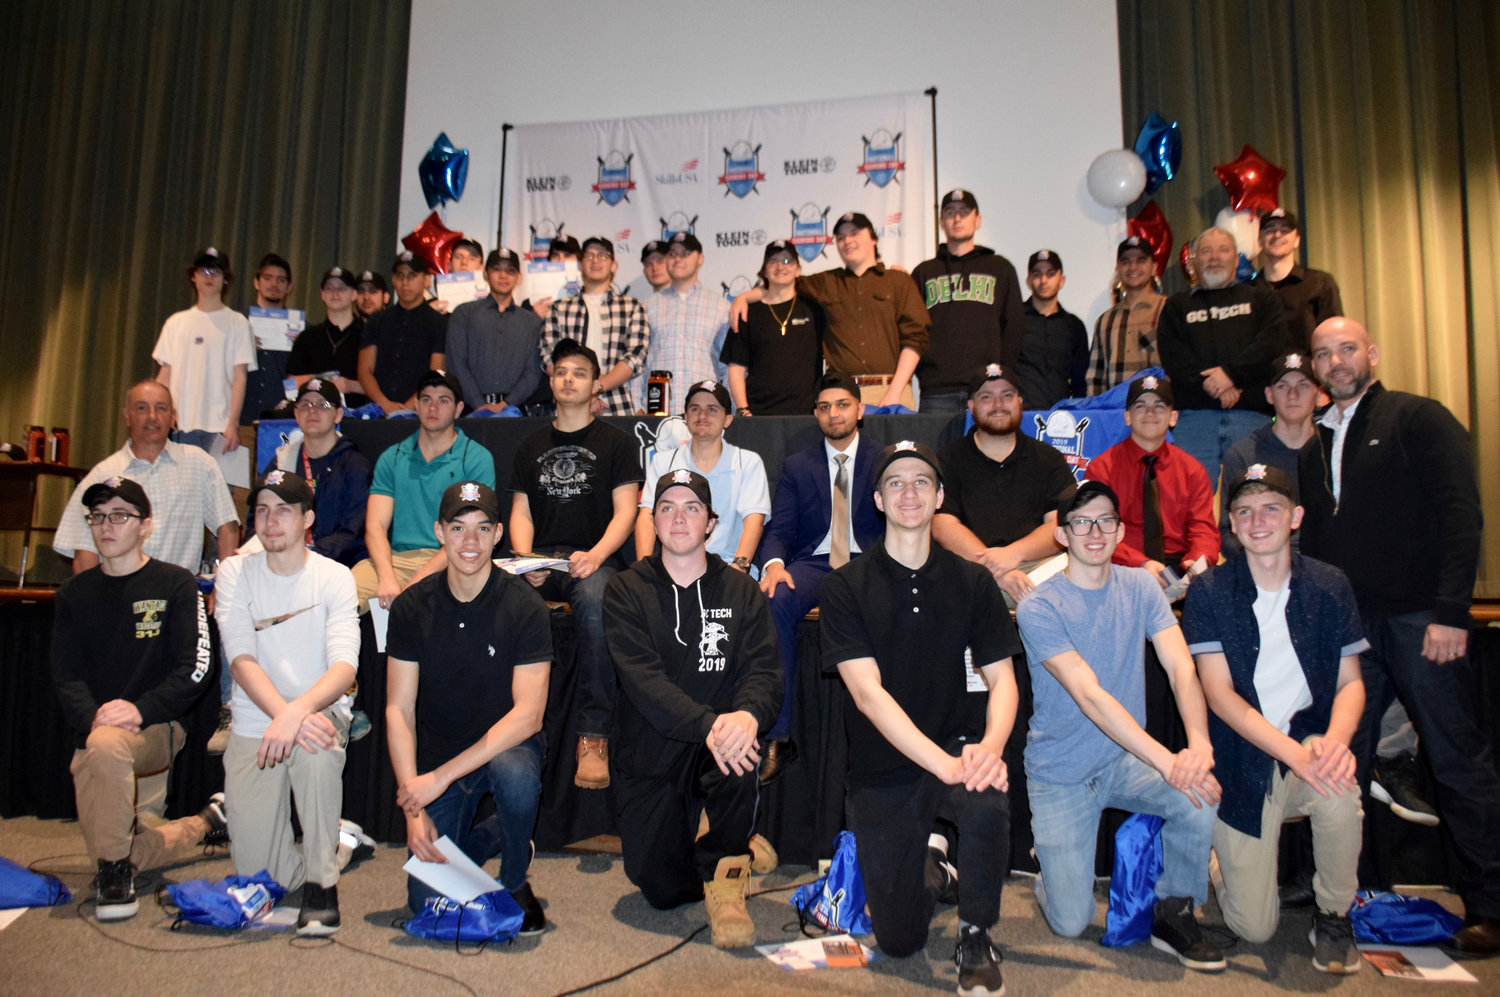 More than 25 seniors participated in National Signing Day at G.C. Claps Career & Technical Center on May 8.